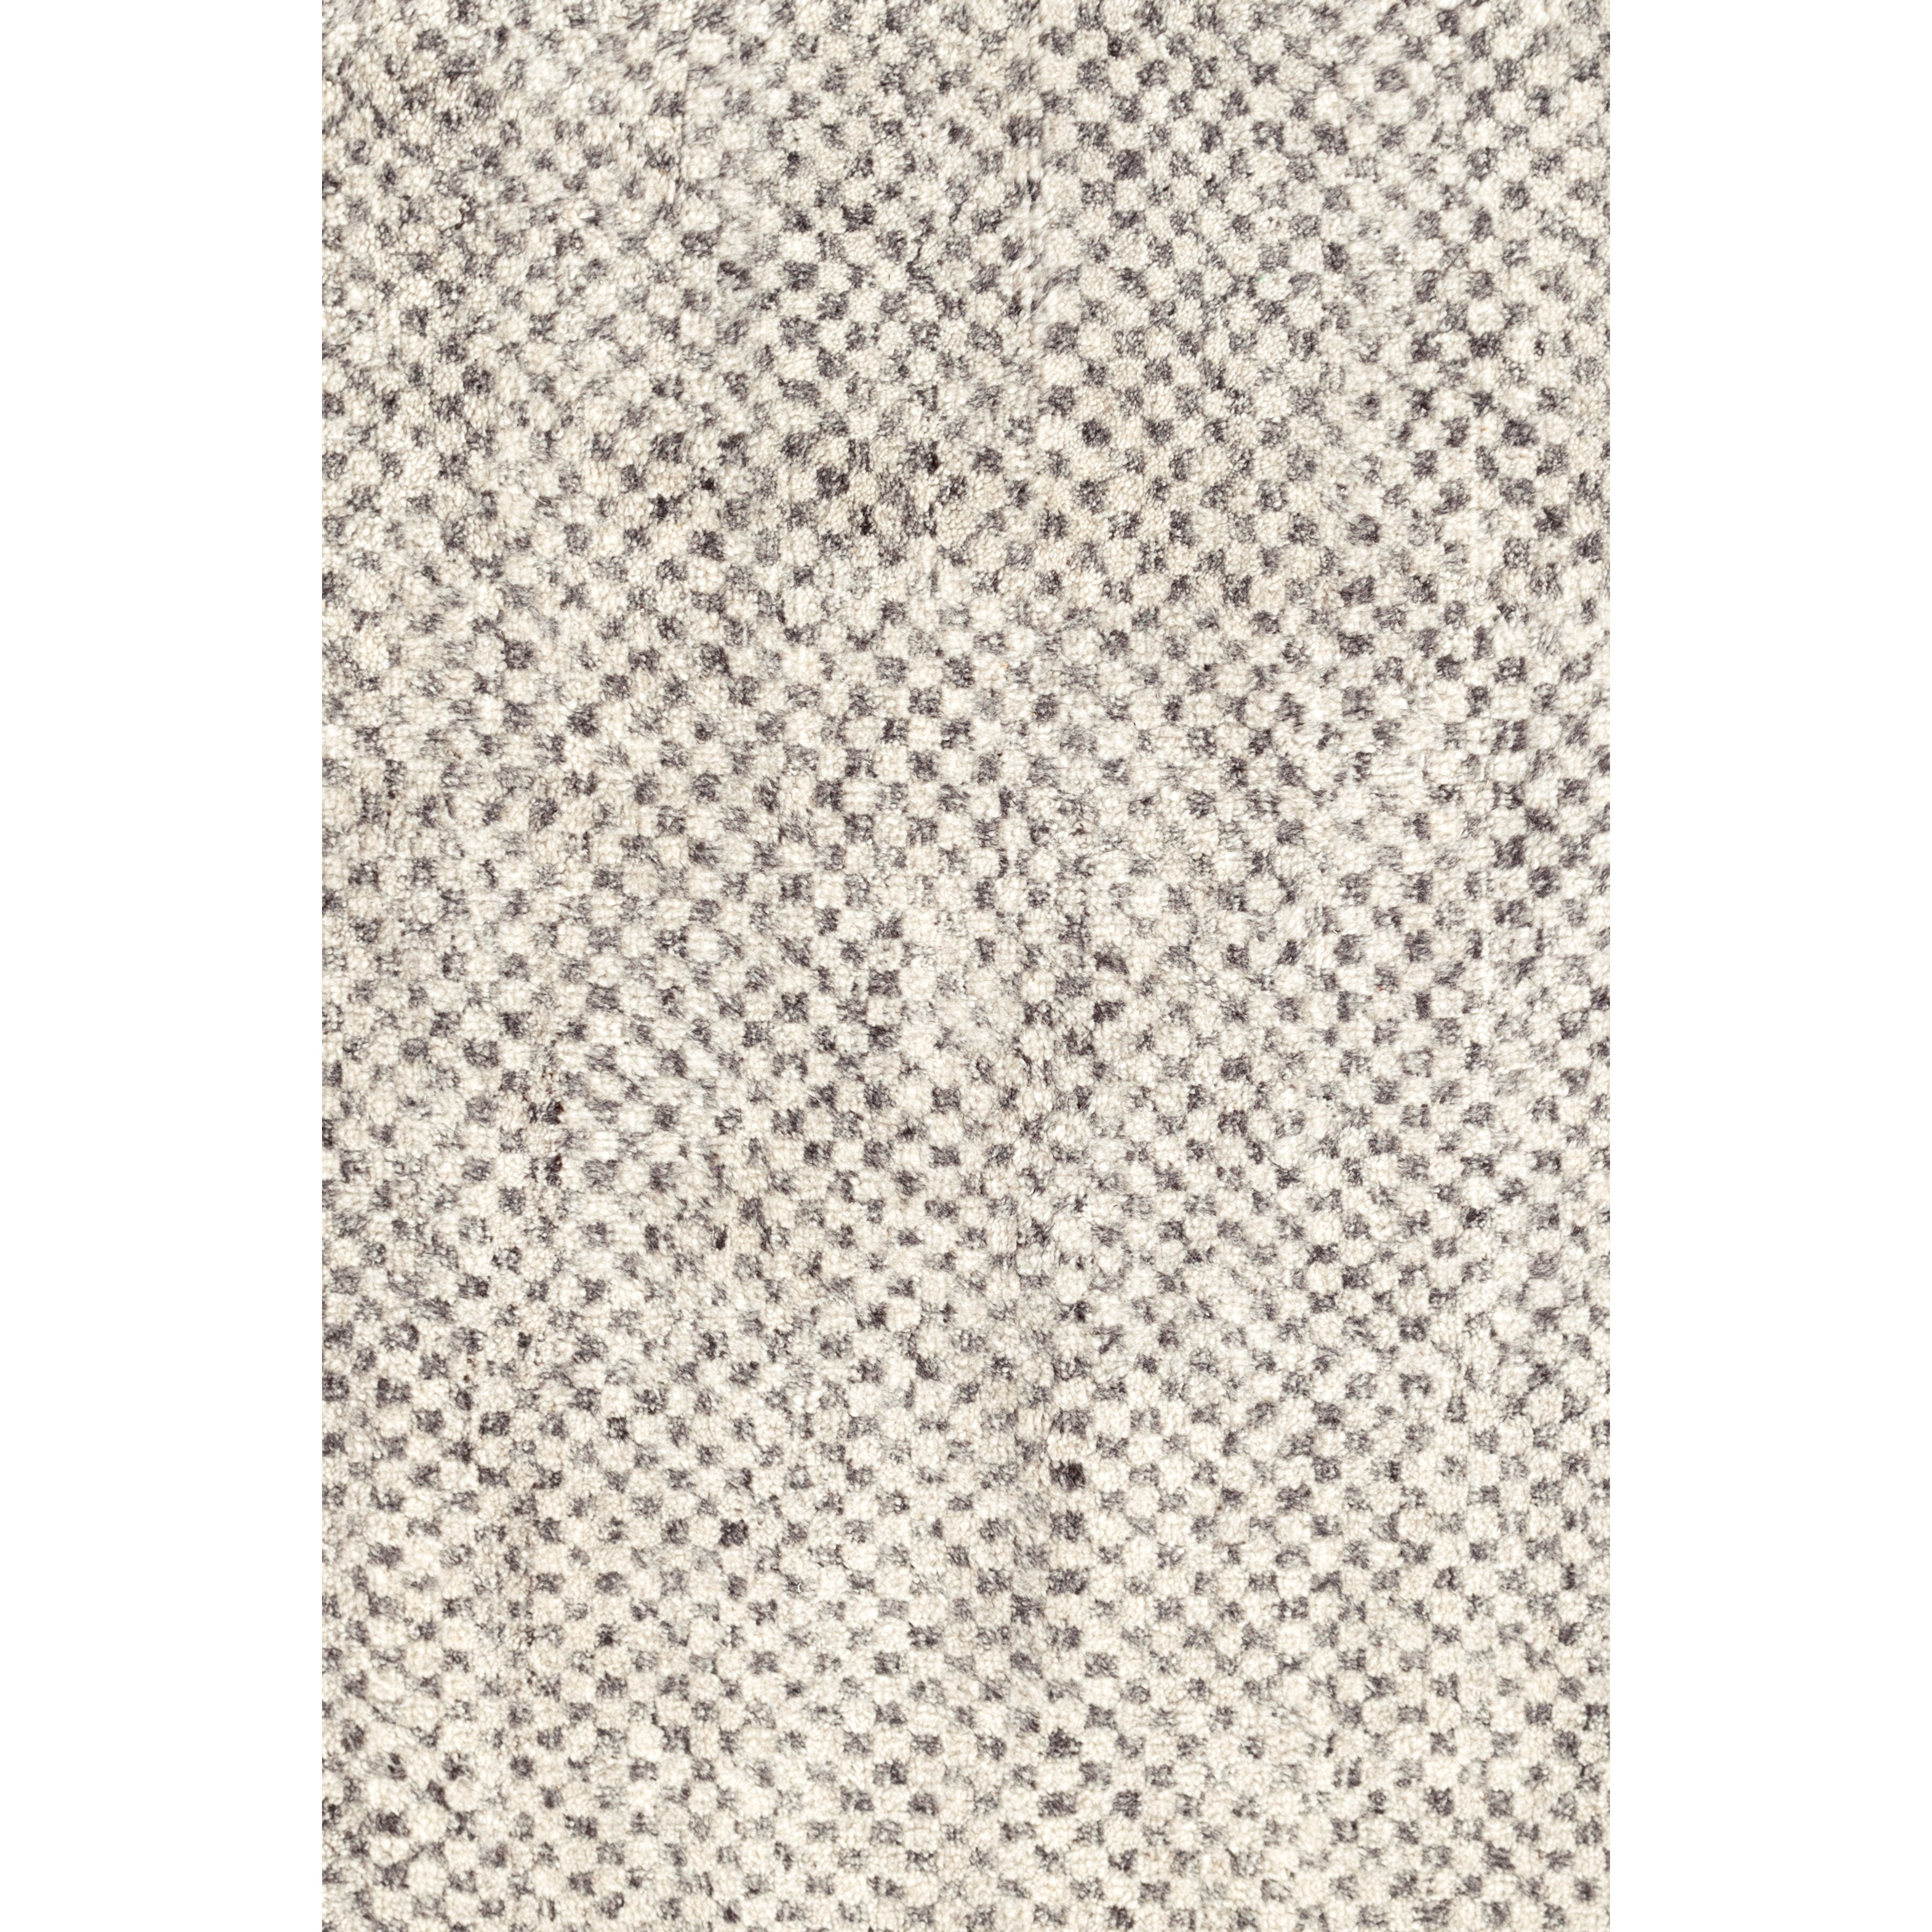 Dash and albert rugs hand knotted beige area rug reviews for Dash and albert wool rugs